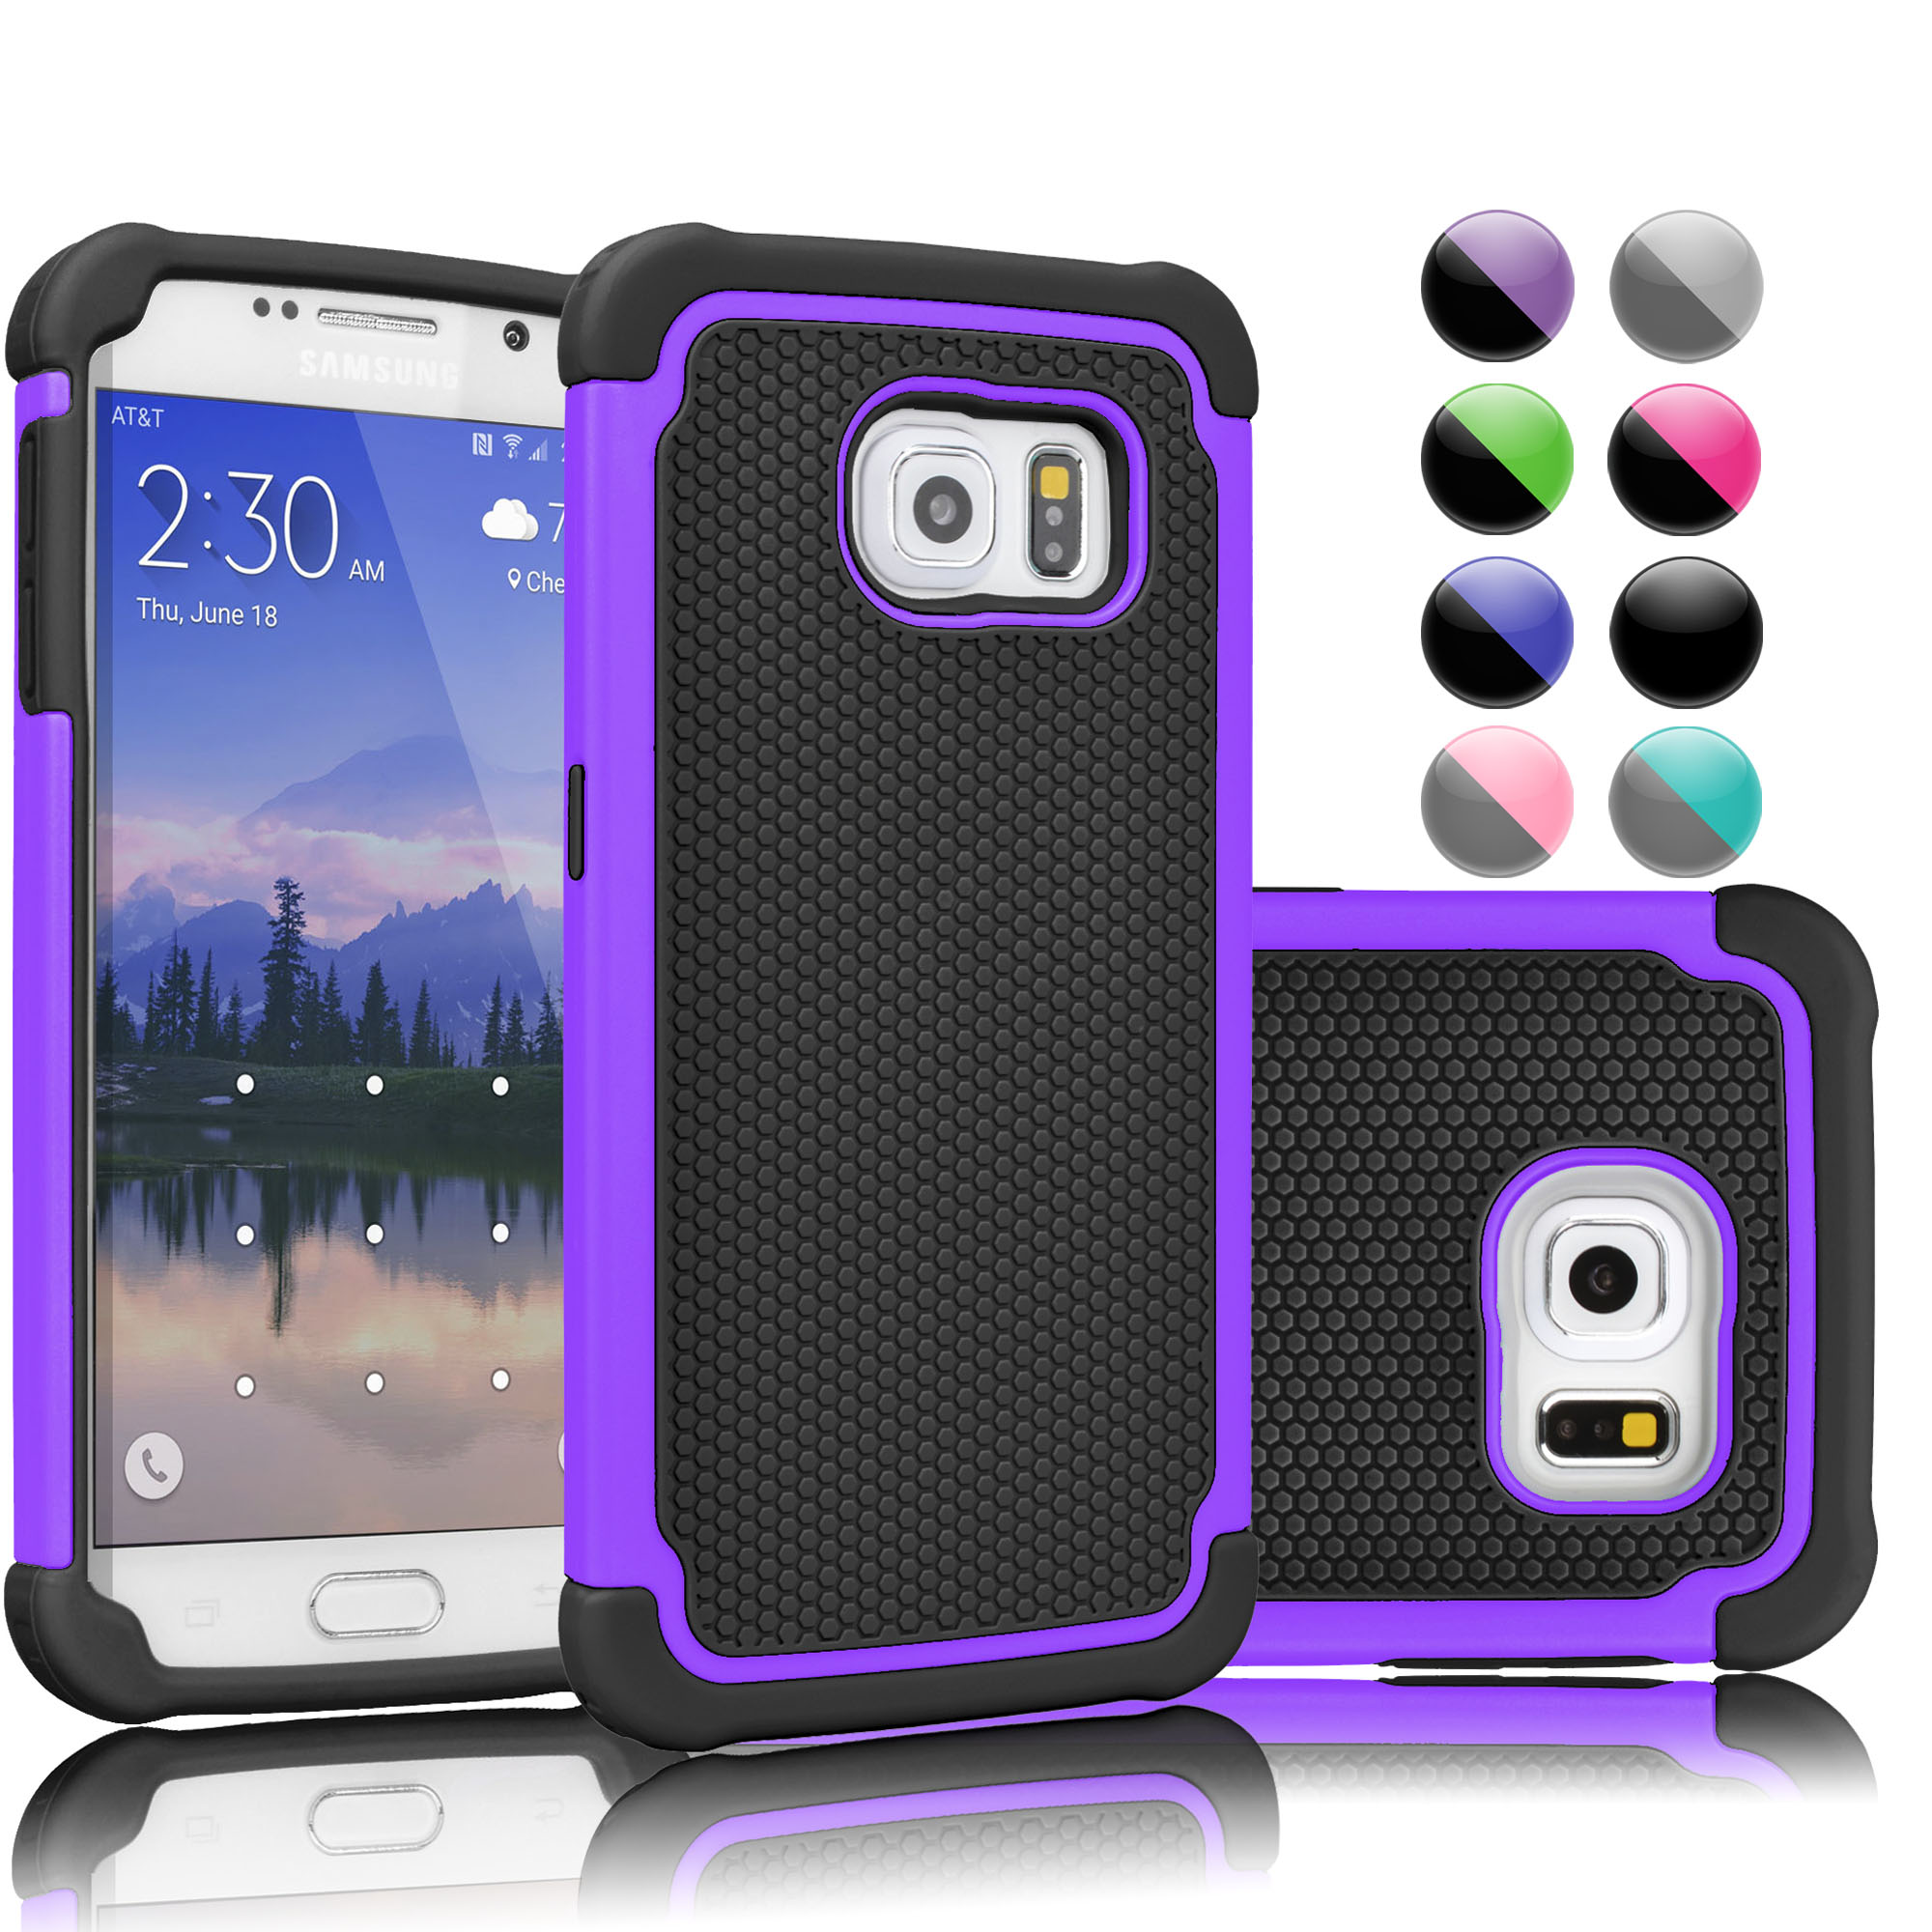 Galaxy S6 Edge Plus Case, S6 Edge Plus Cute Case, Njjex Shockproof Protection Rugged Rubber Double Layer Plastic Hard Case Cover For Samsung Galaxy S6 Edge Plus -Purple